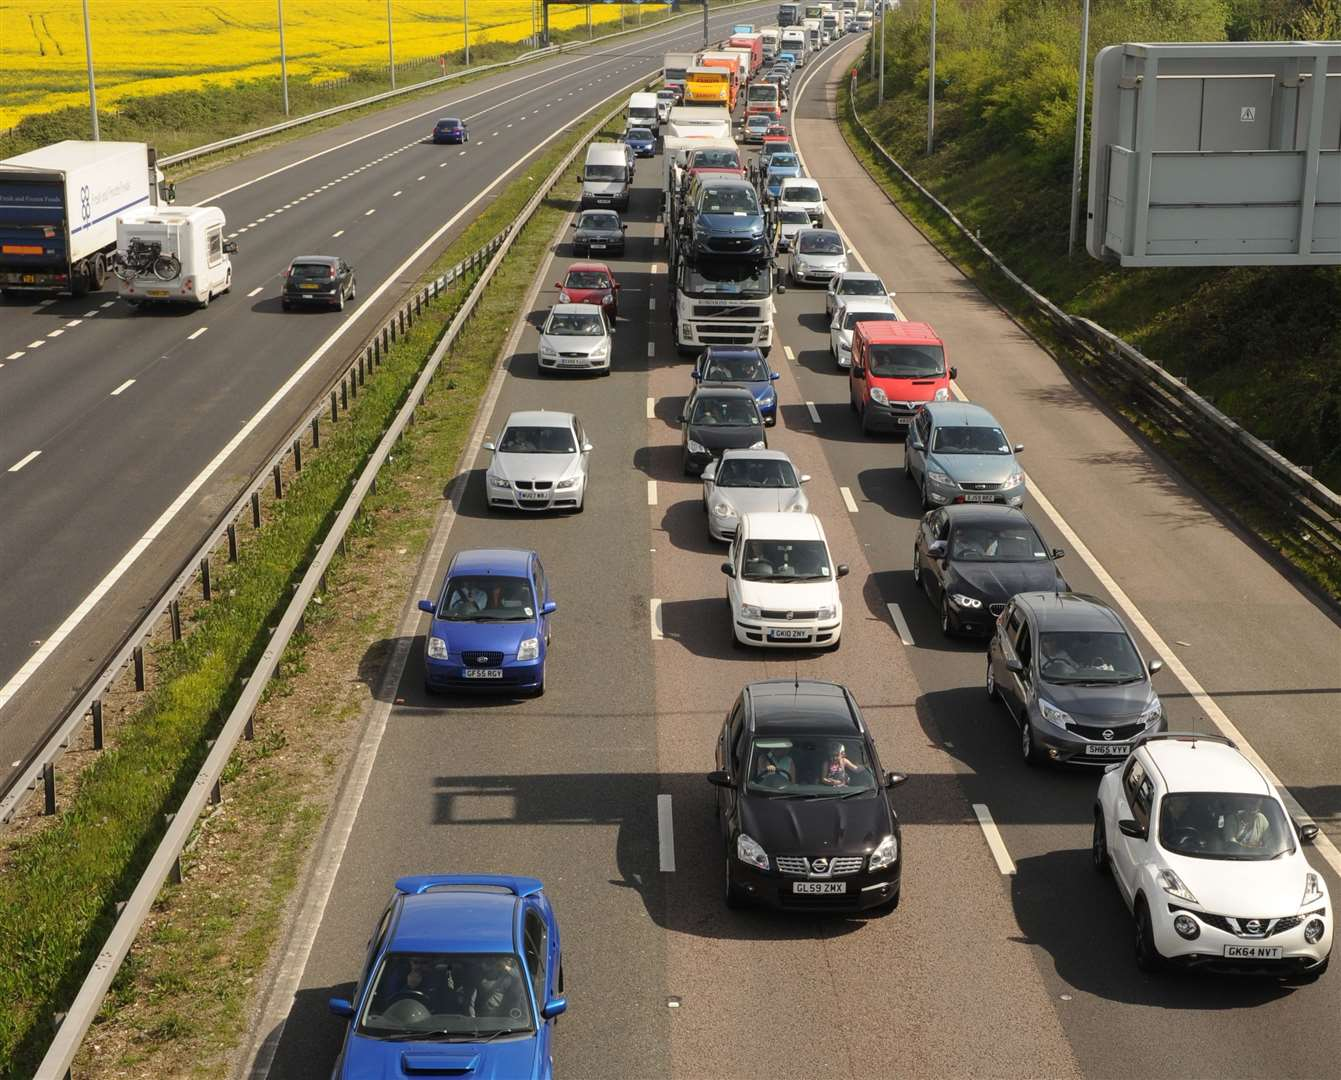 There were huge delays on the M2 and the A2 at the weekend